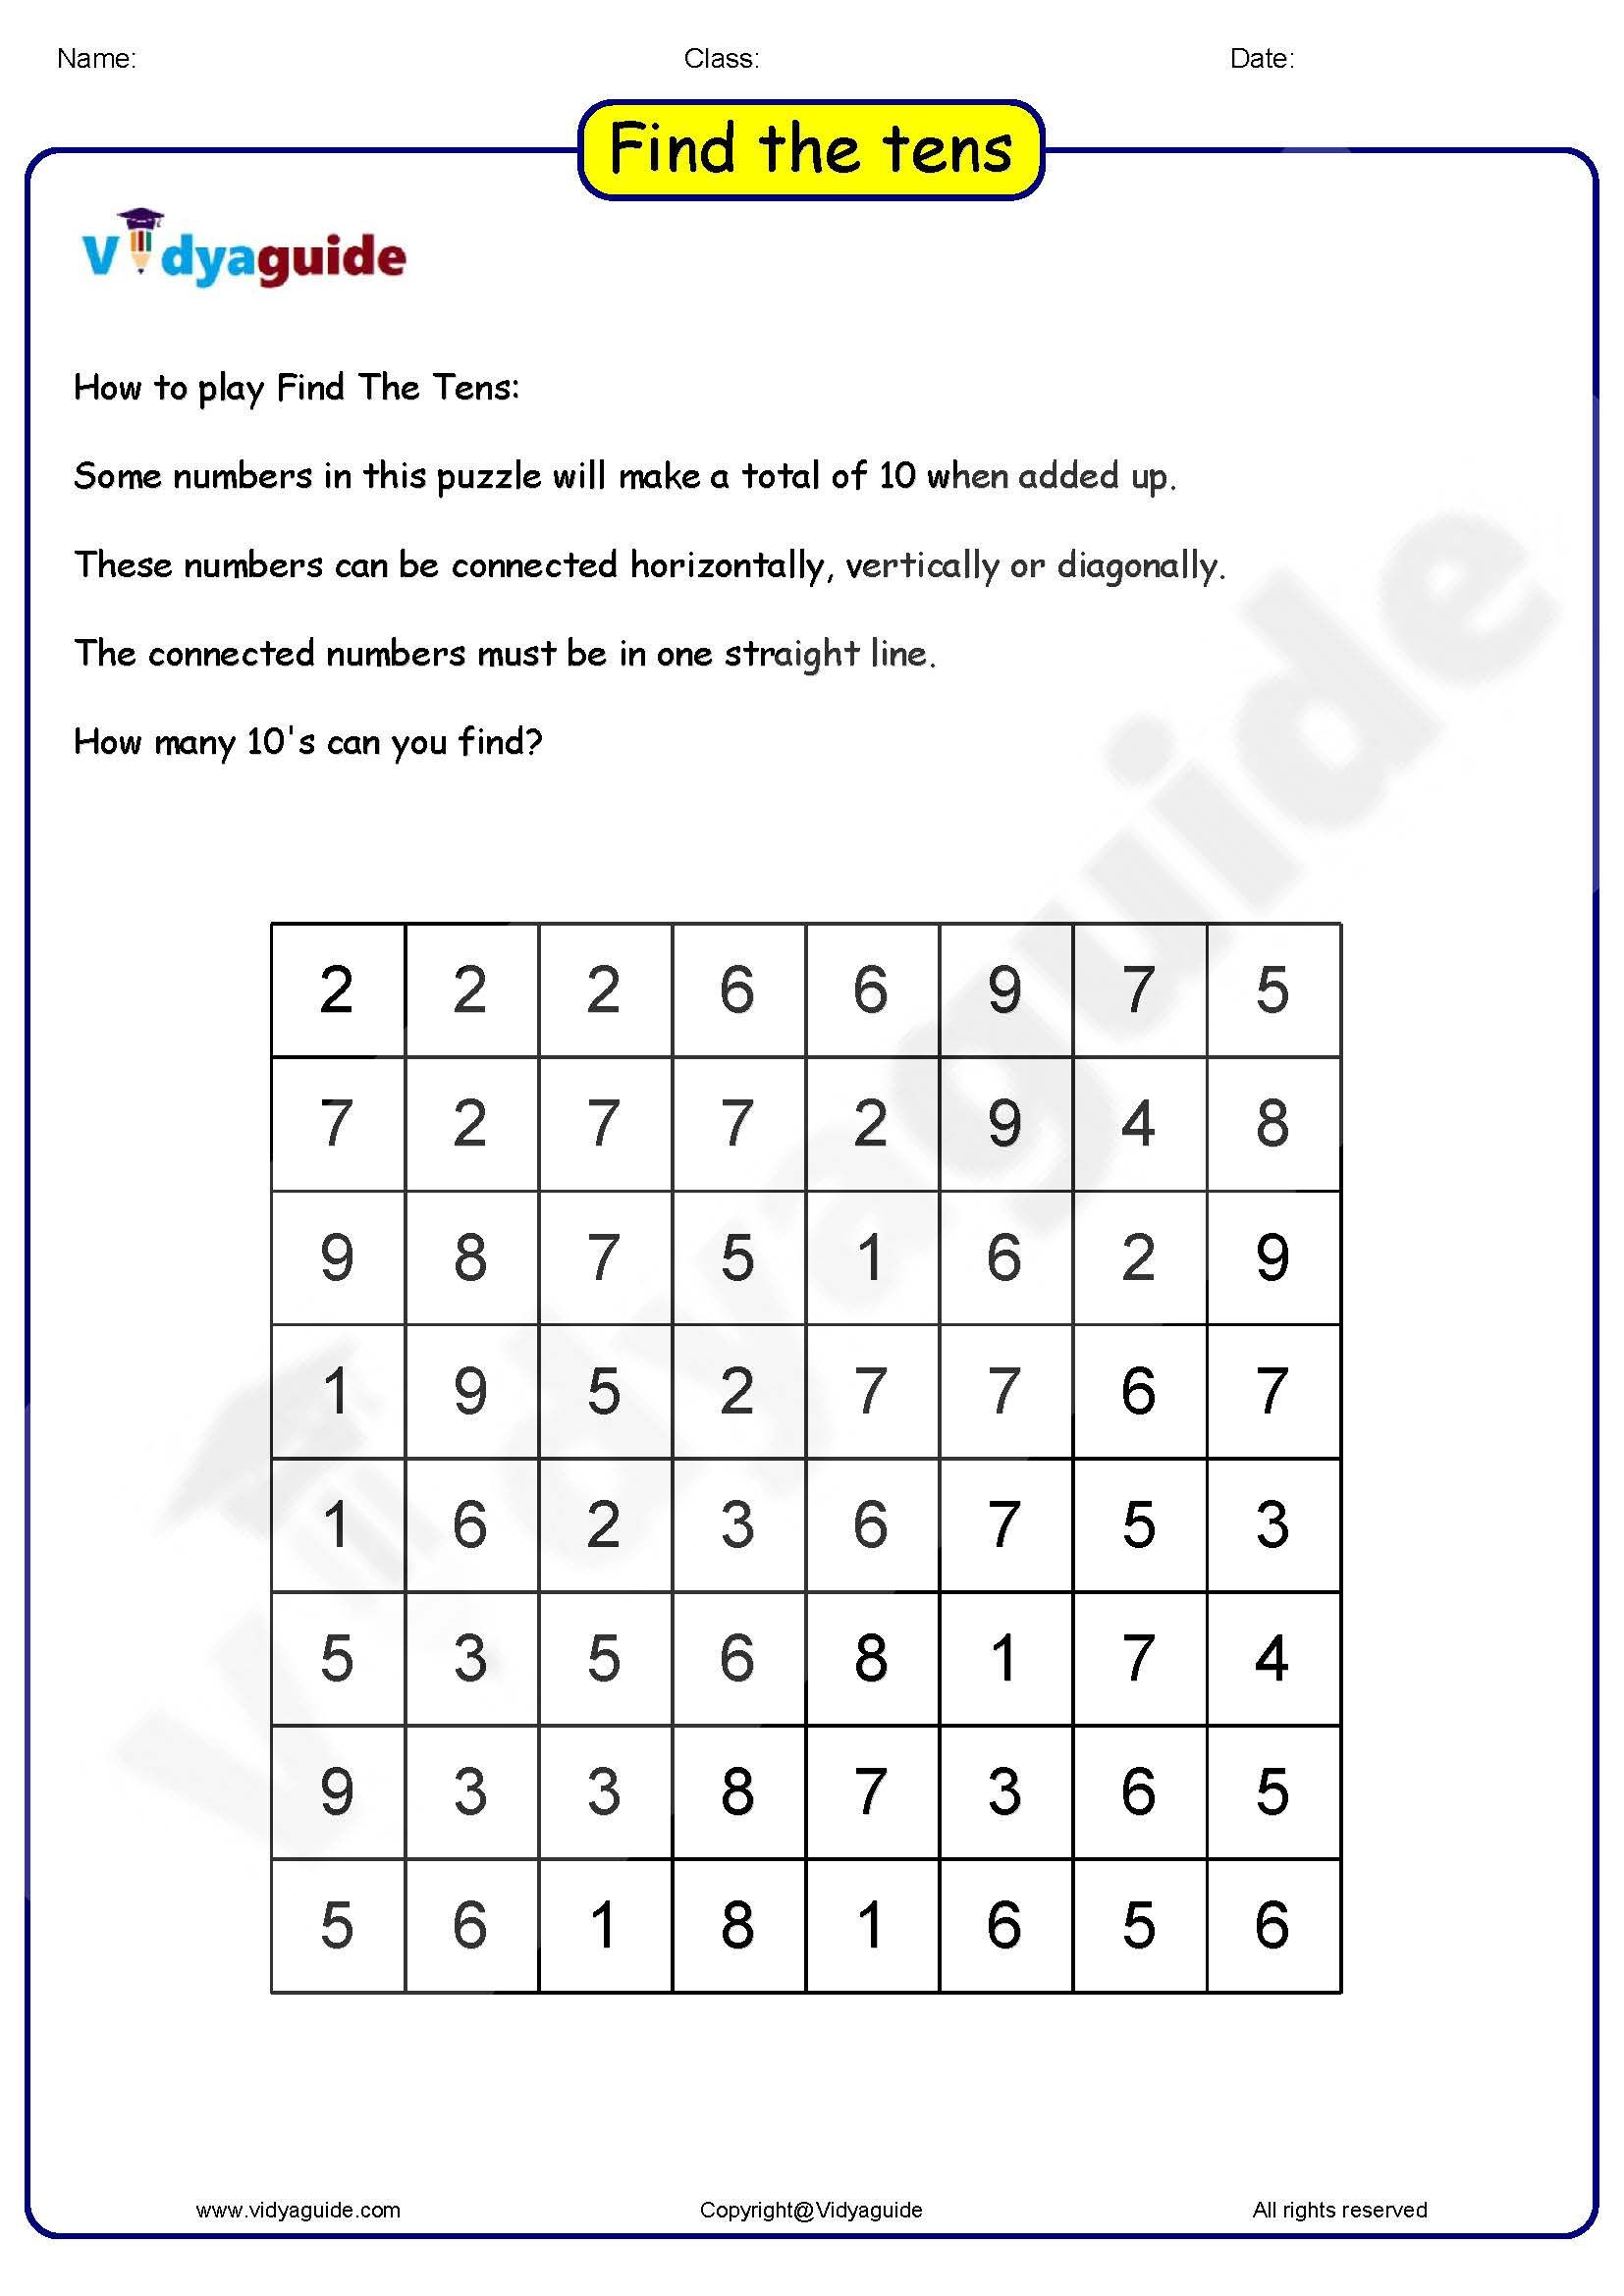 3rd Grade Brain Teasers Printable Maths Games for Kids Find the Tens 01